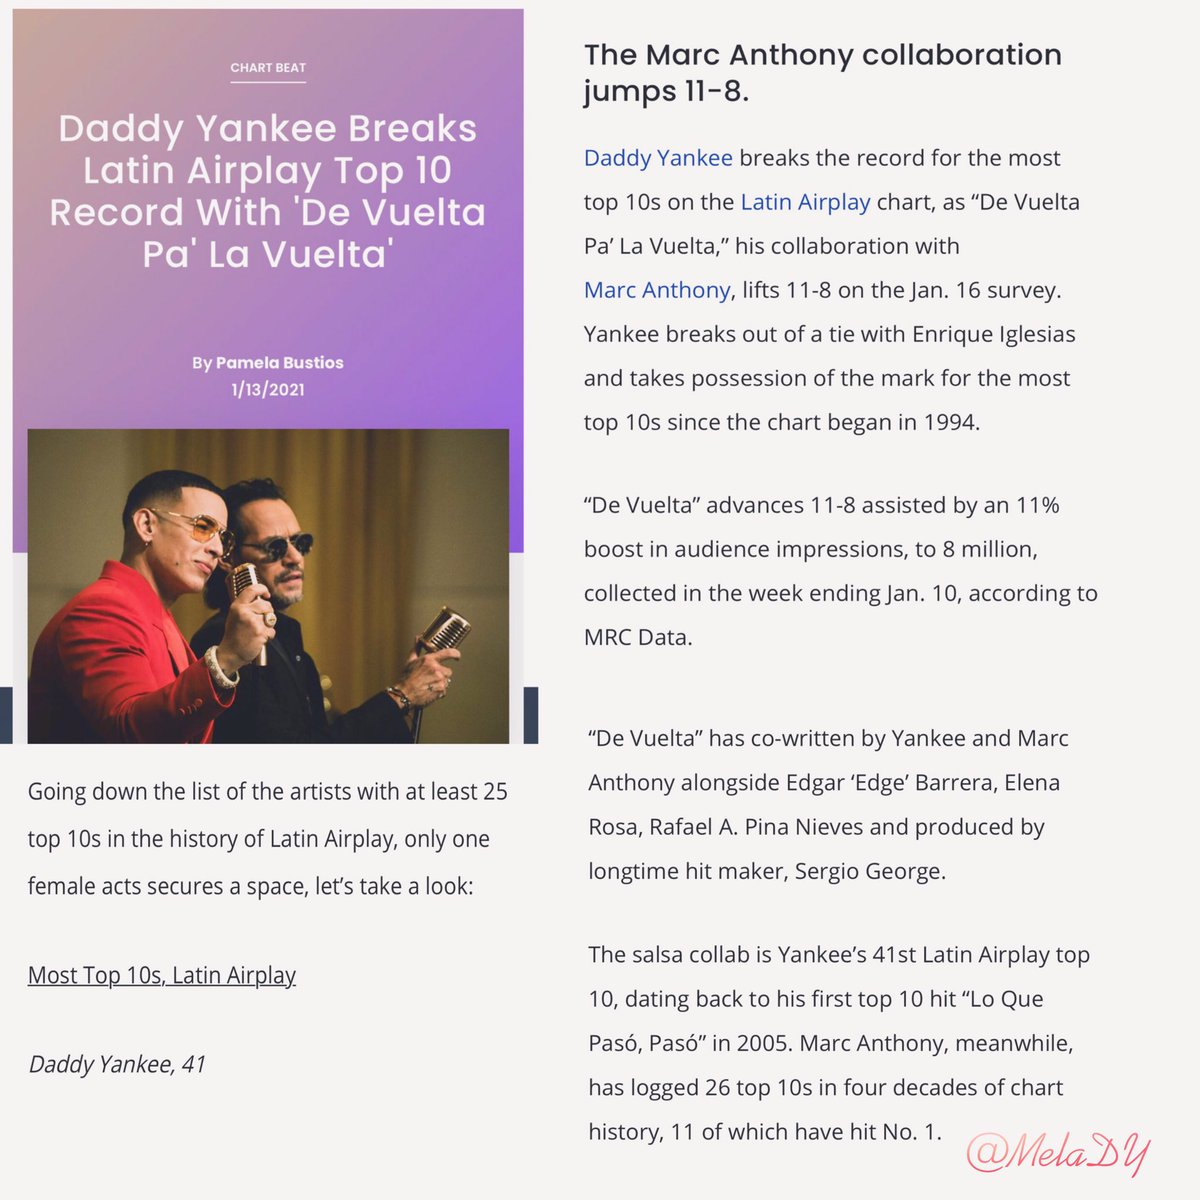 """The big boss @daddy_yankee breaks Latin Airplay Top 10 record with """" De vuelta pa' la vuelta """" , now holding the record for the most top 10s ever on the #LatinAirplay chart.   Congrats king .🤴🏻🎊👏🏻  By : @billboardlatin"""